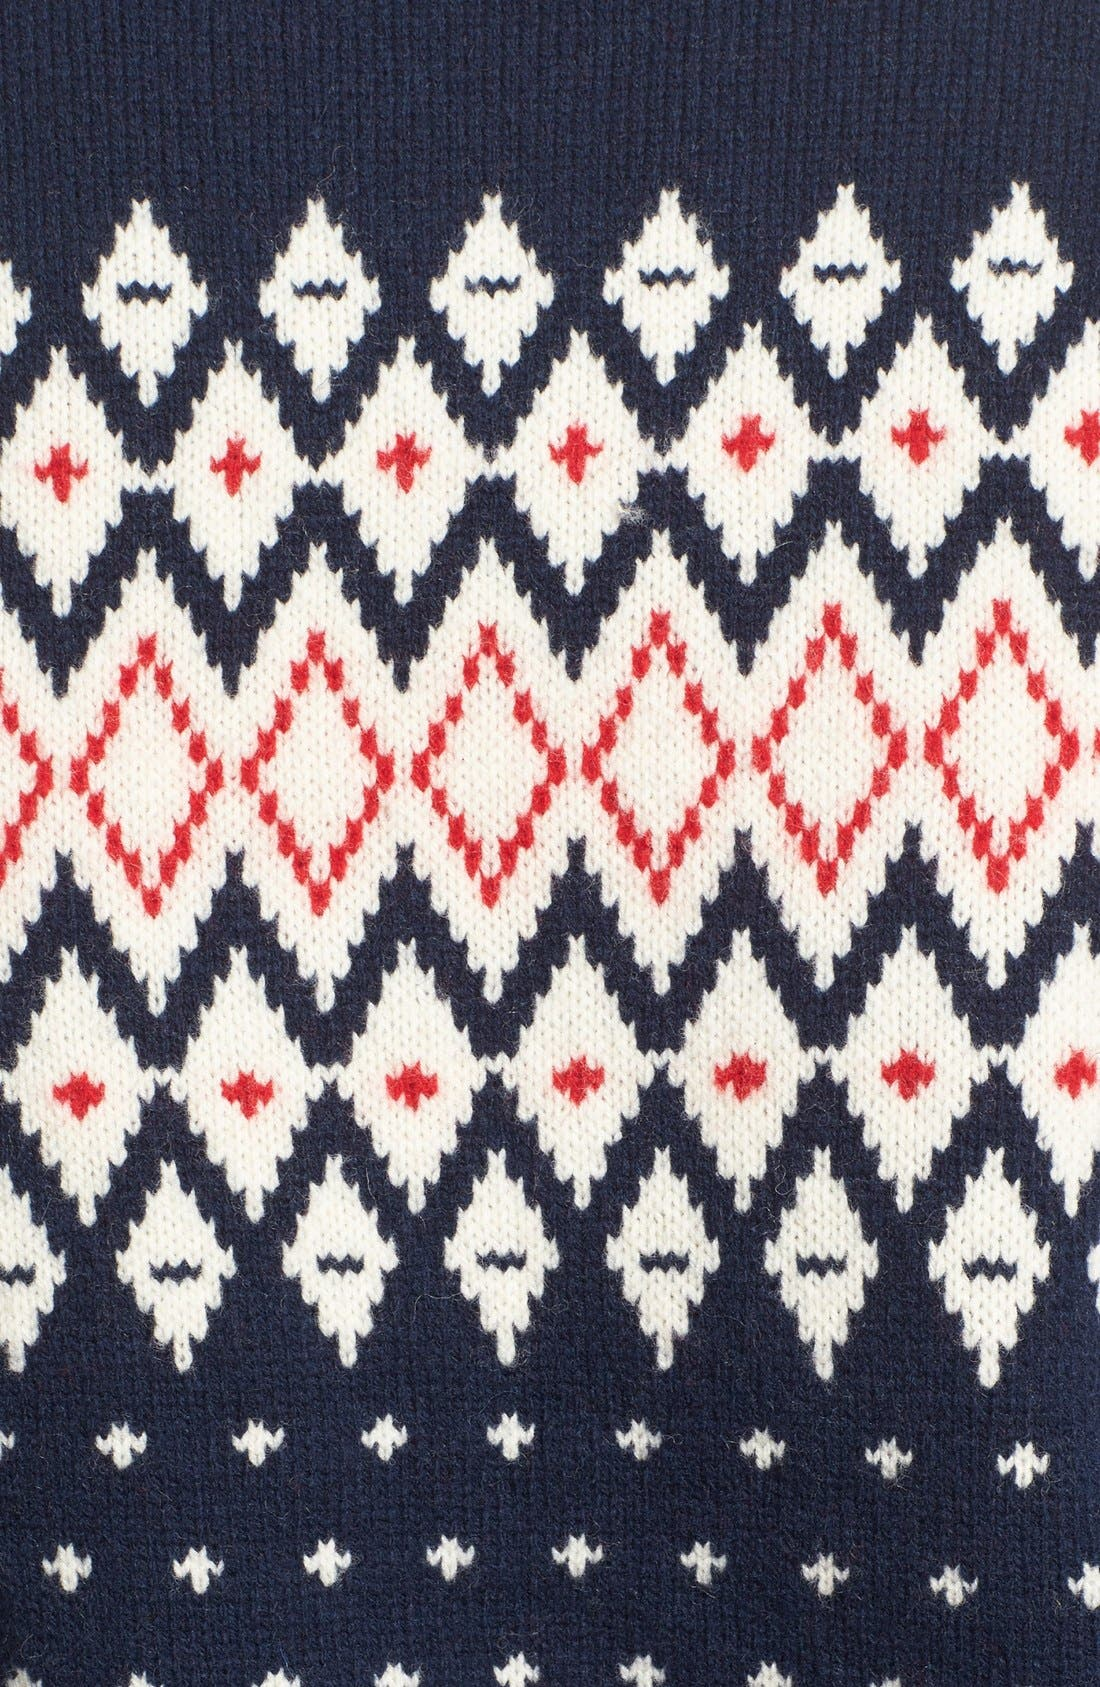 Lambswool Fair Isle Crewneck Sweater,                             Alternate thumbnail 3, color,